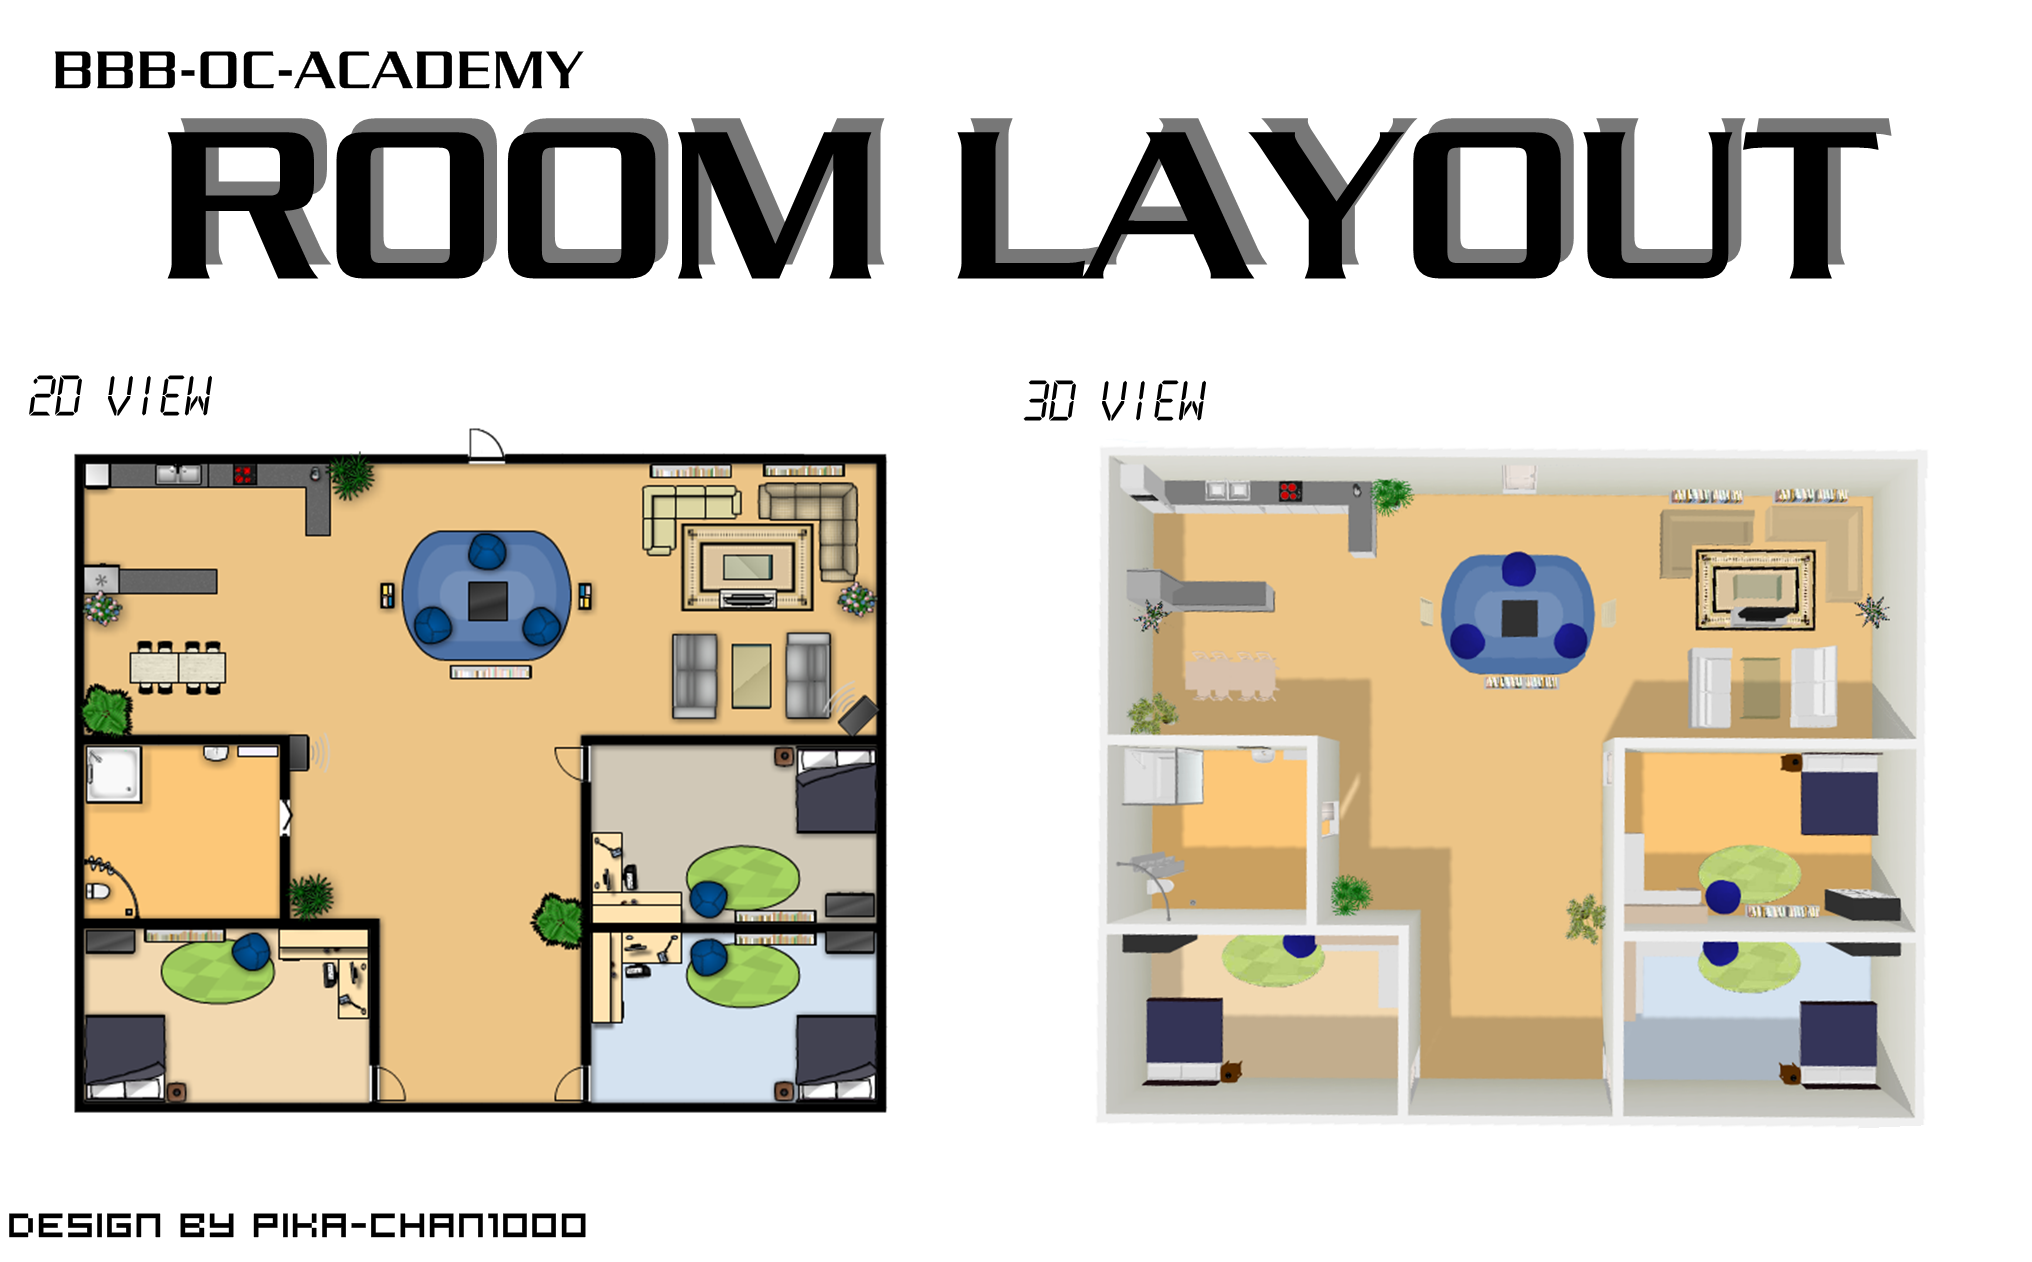 Room Layout [2D and 3D]